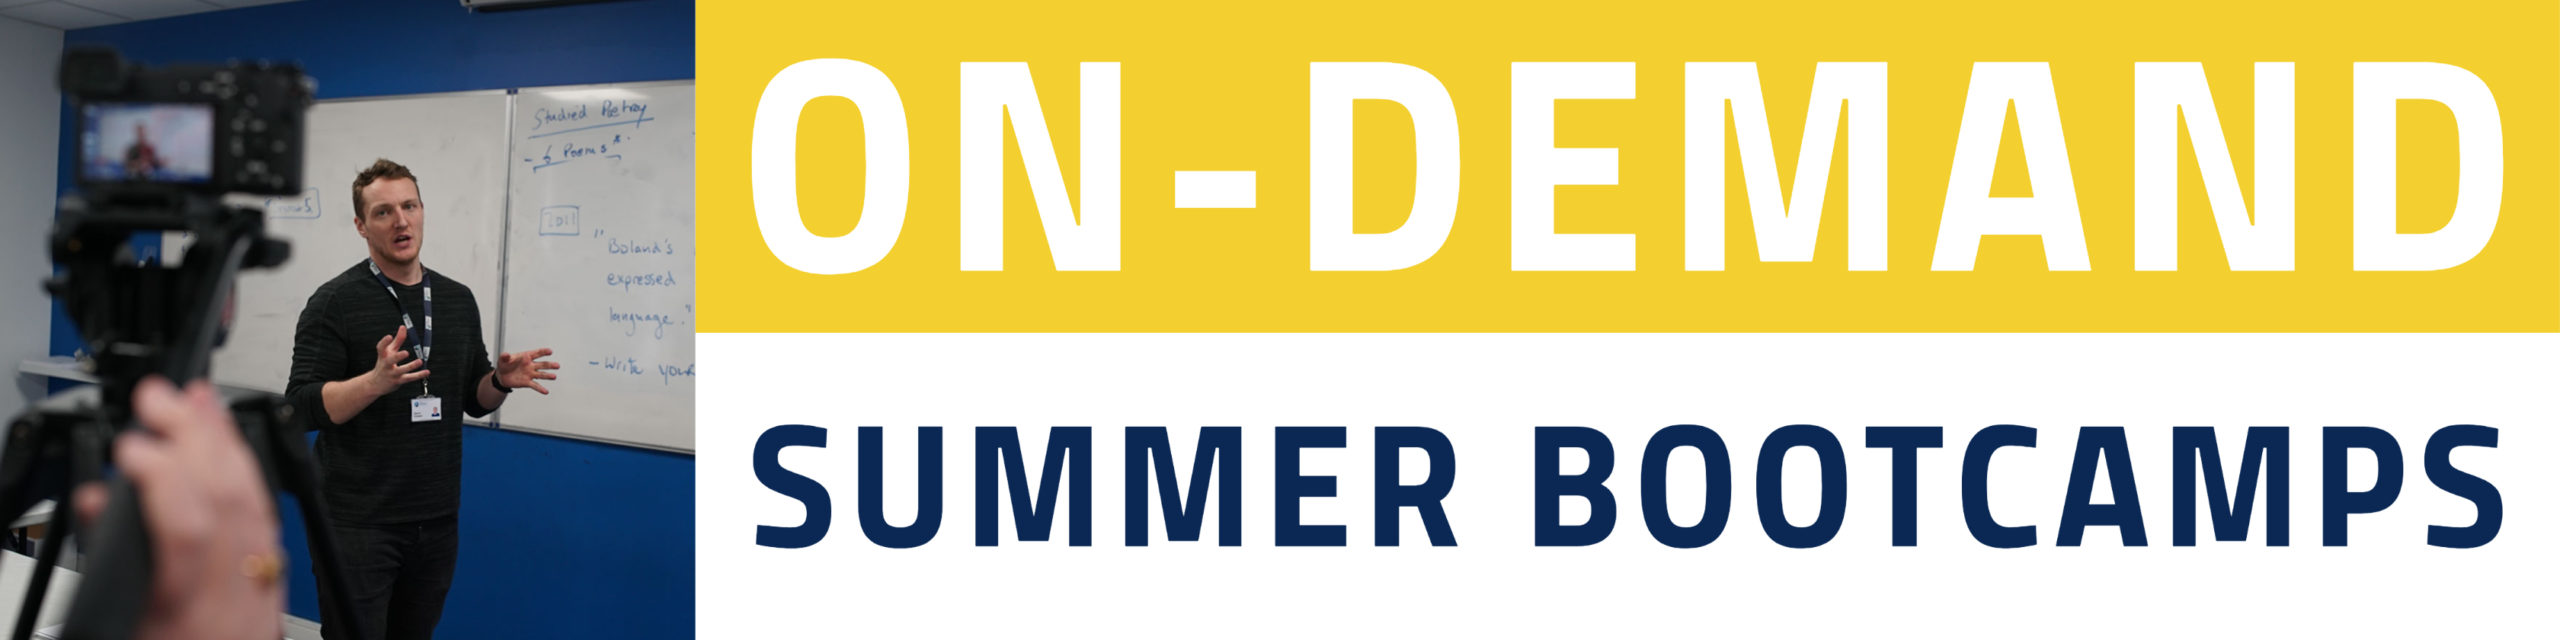 5th Year On-Demand Summer Bootcamps